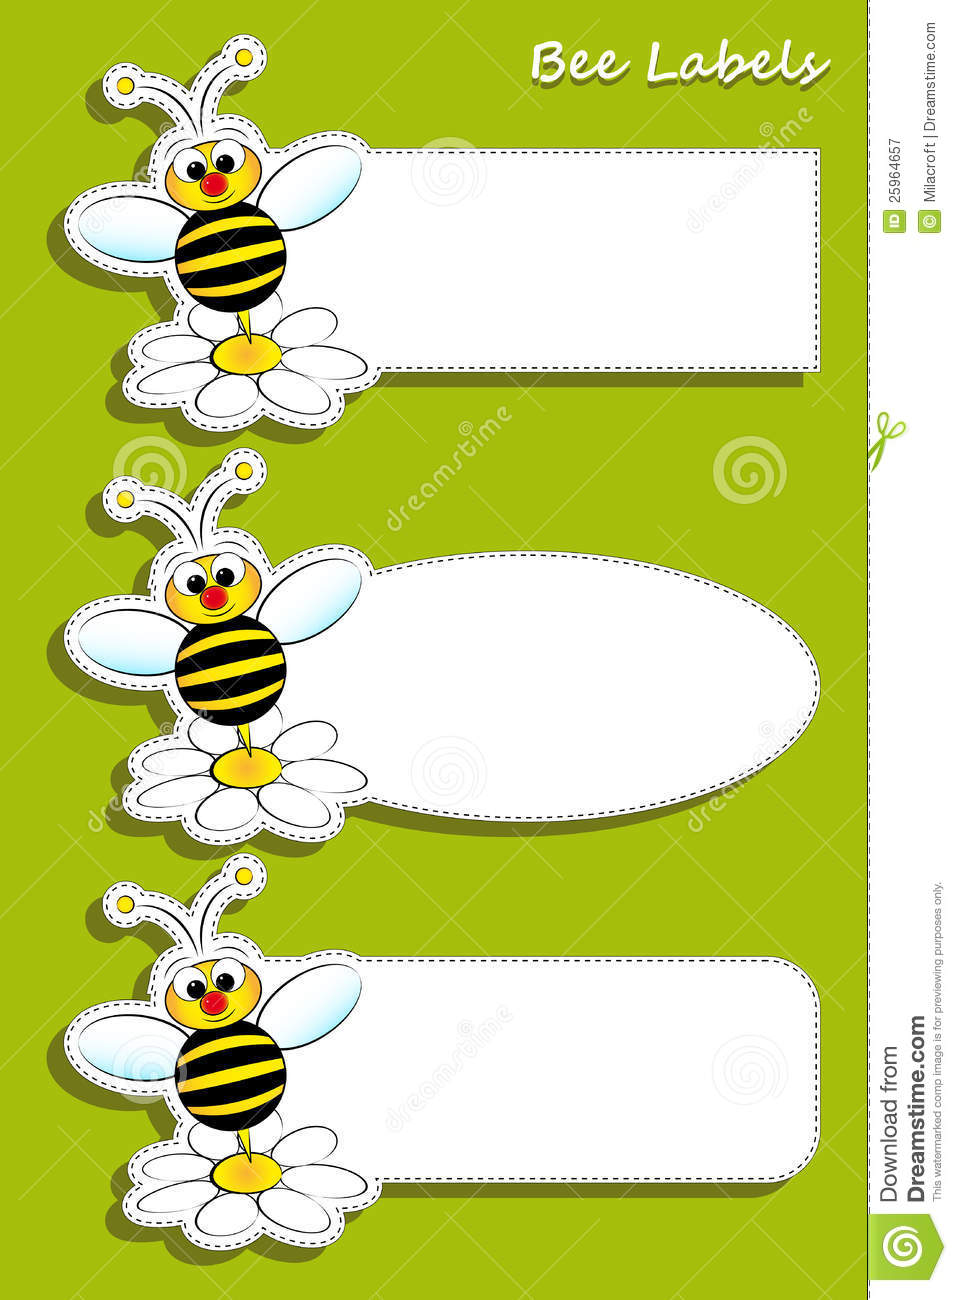 ... Illustration For Kids Royalty Free Stock Photography - Image: 25964657